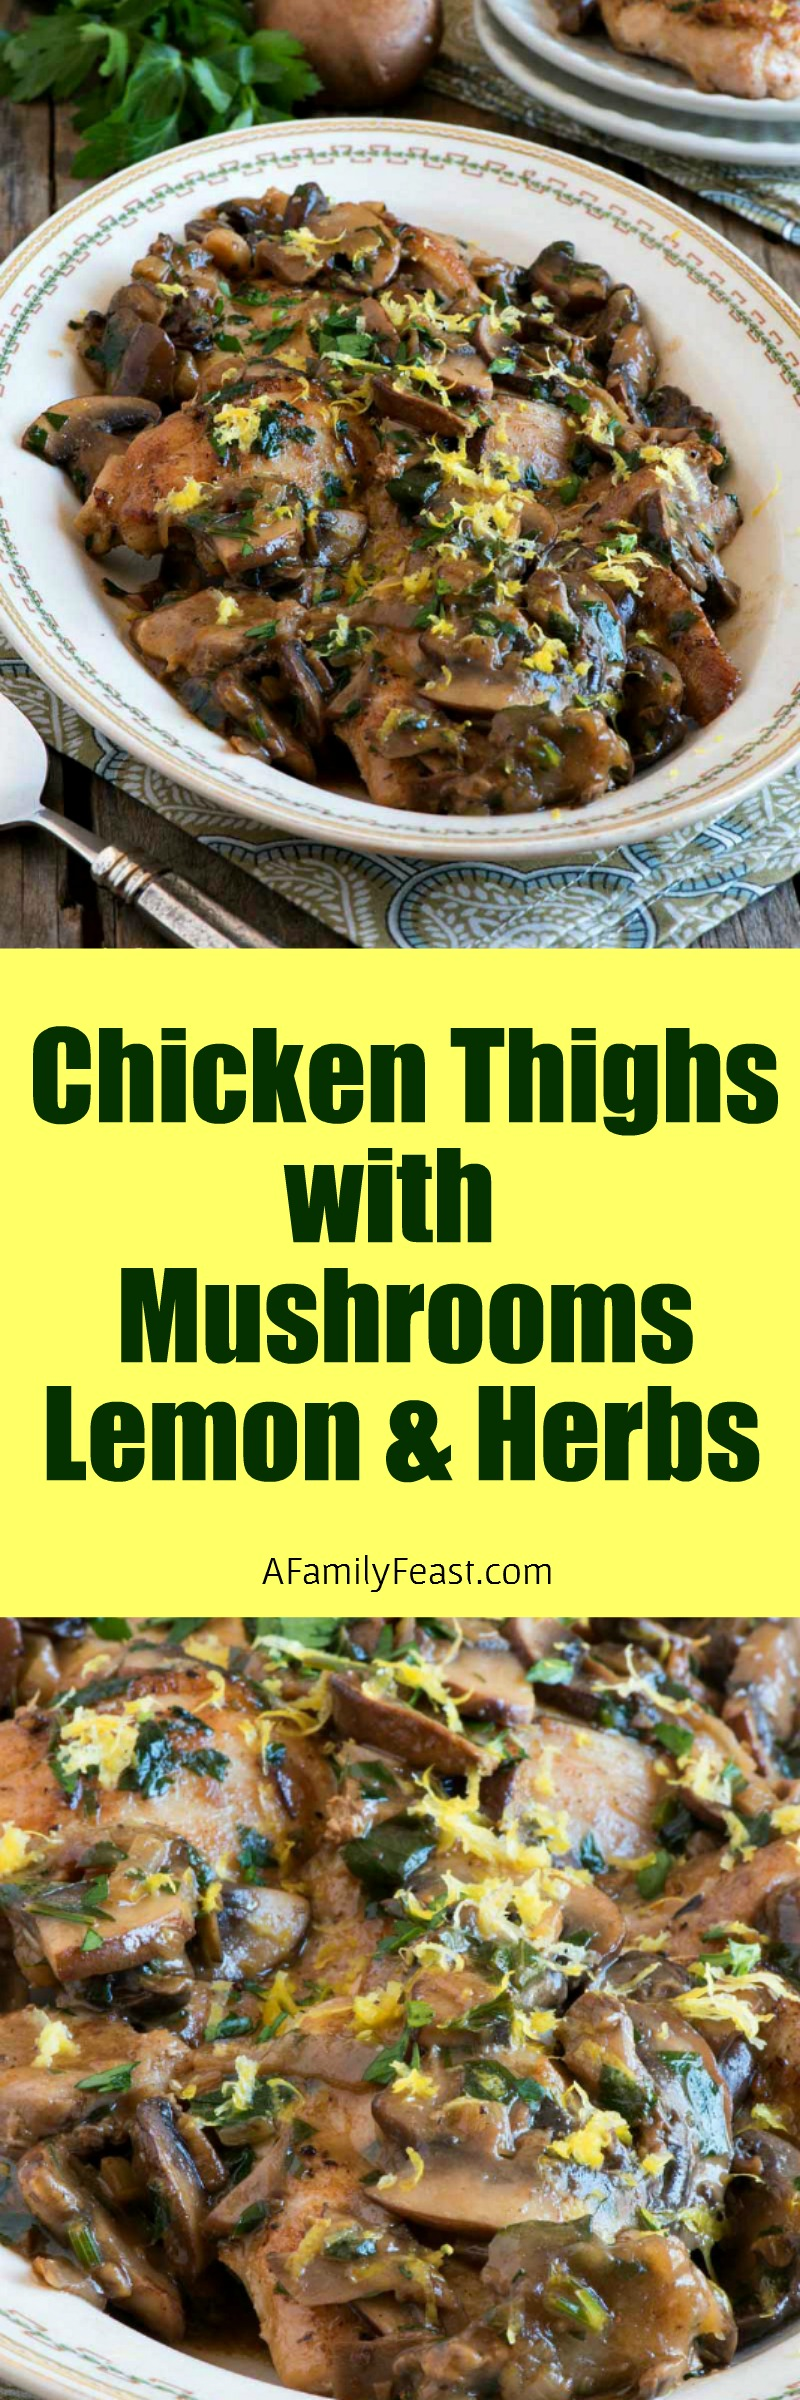 Chicken Thighs with Mushrooms, Lemon and Herbs recipe - perfect for a quick weeknight meal at home but so delicious, you'll think you are eating at a gourmet restaurant.